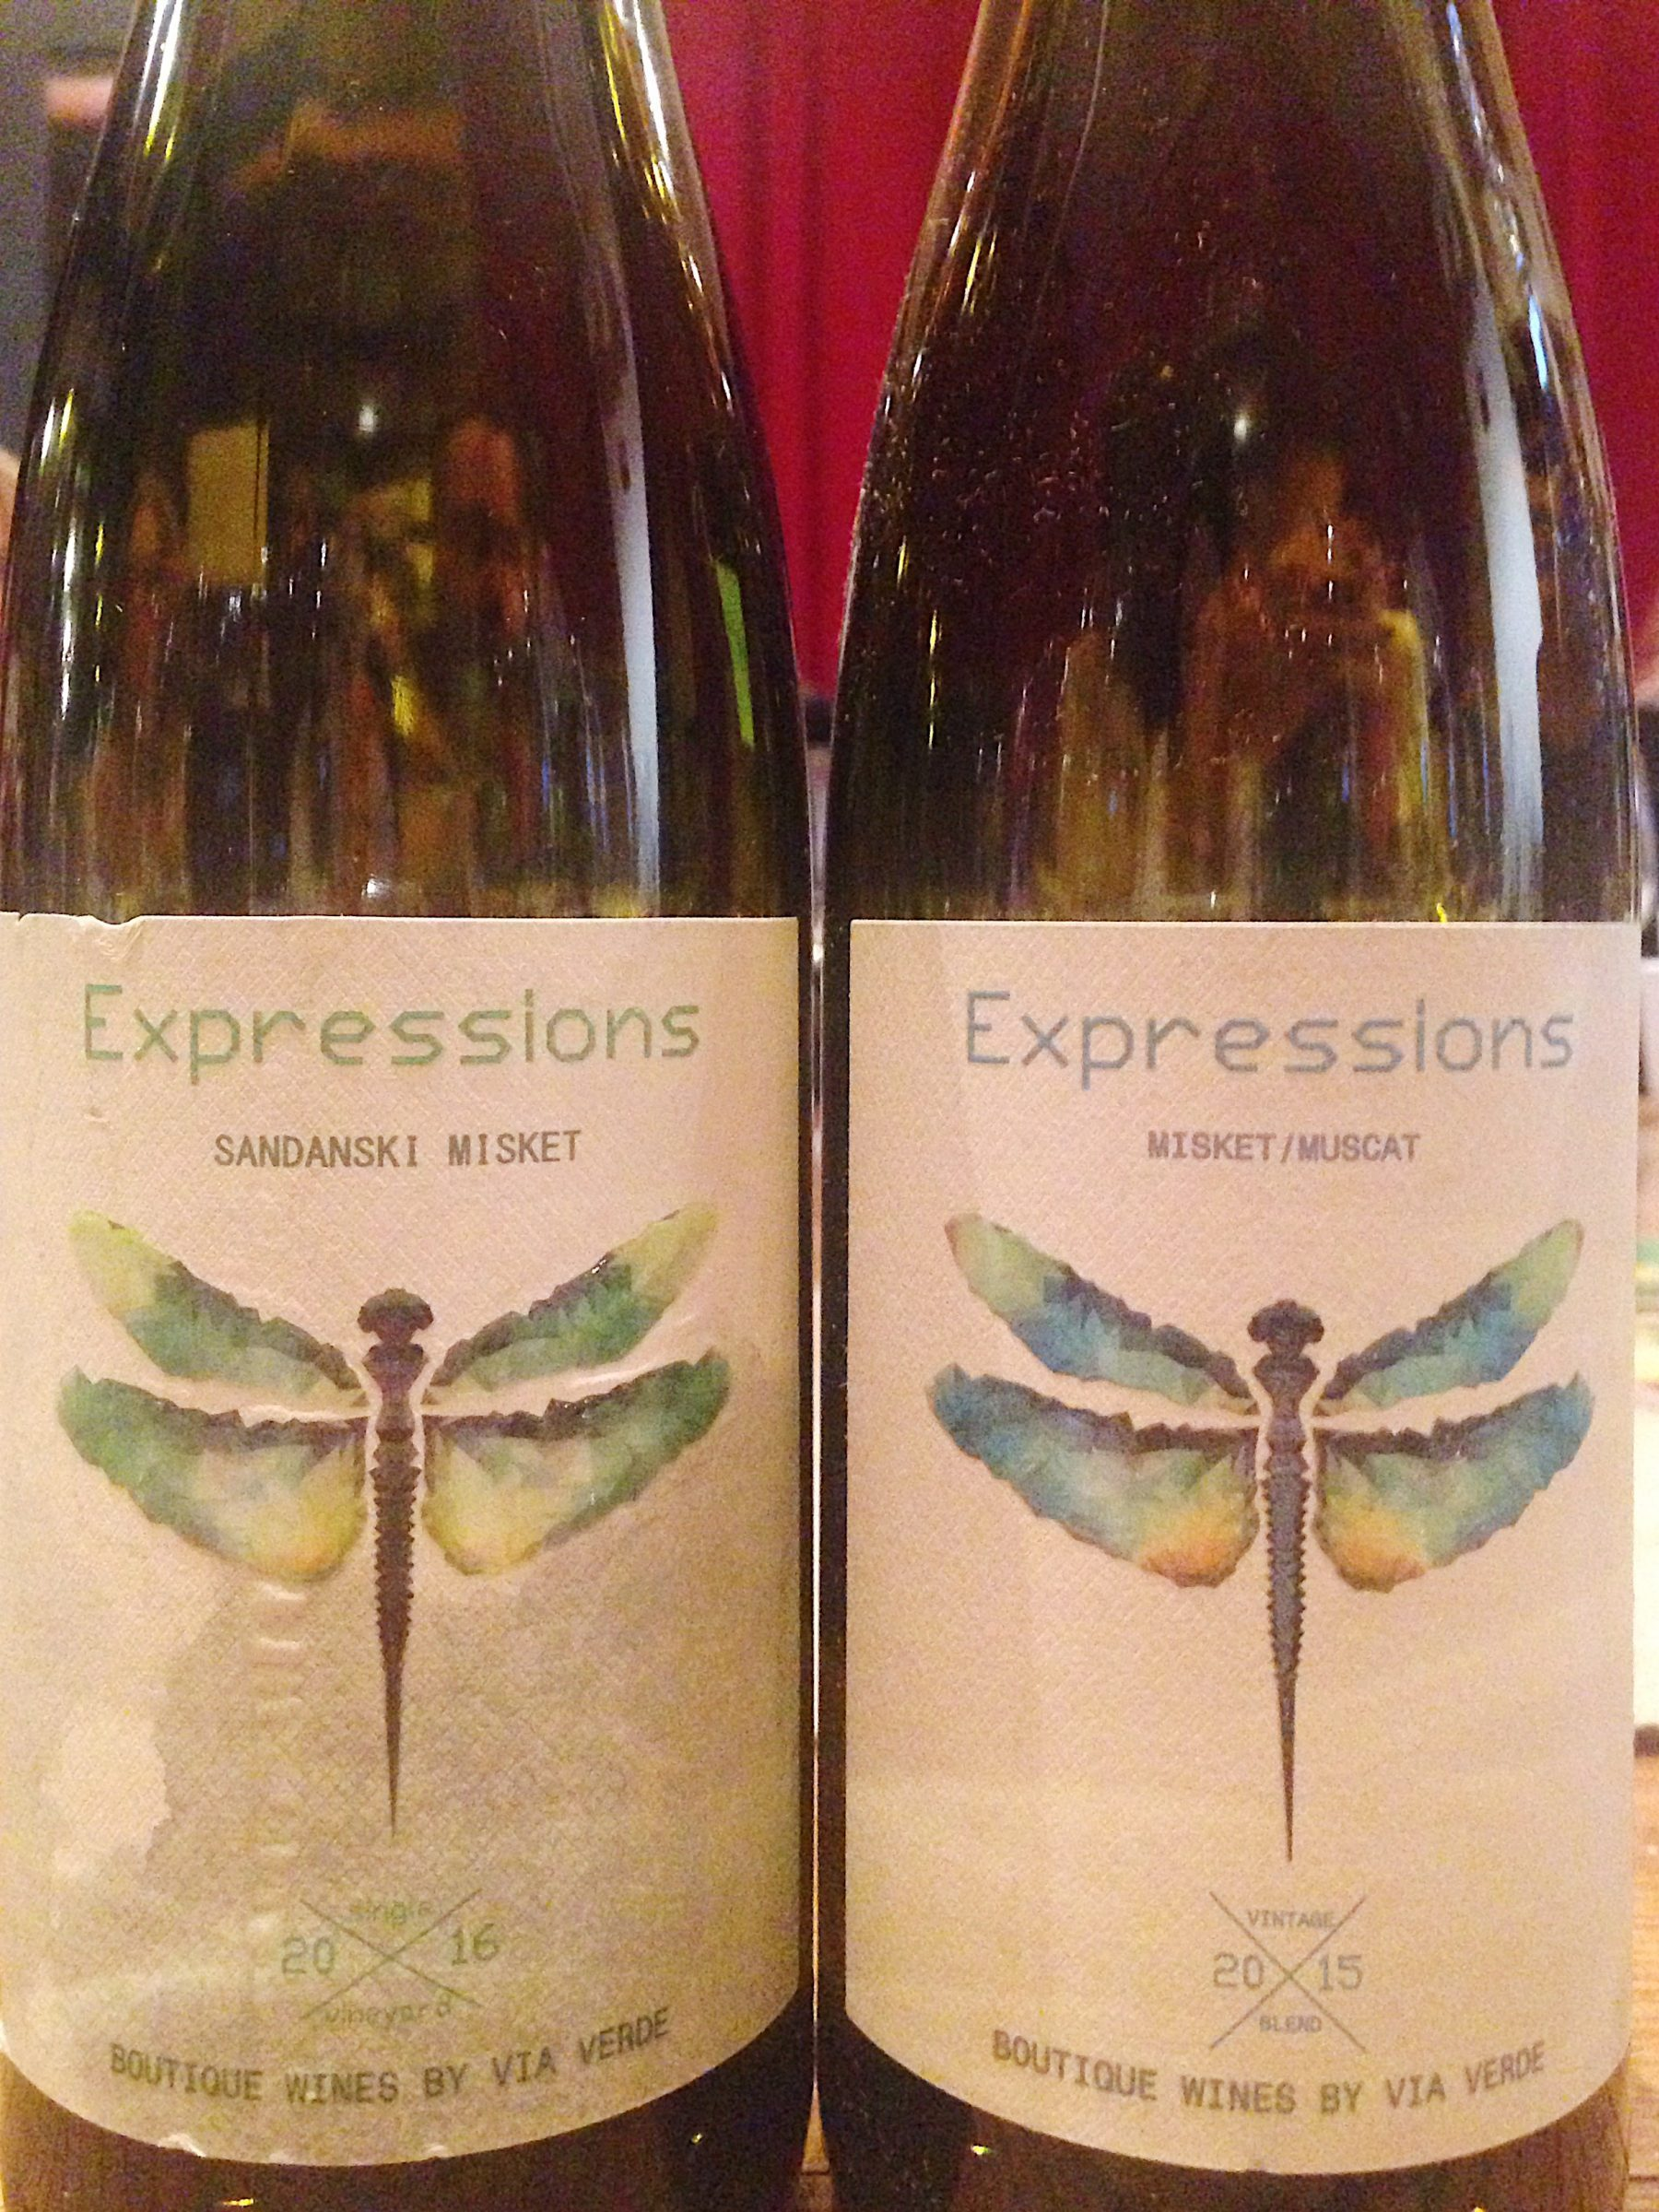 2015 Misket and Muscat, Expressions, Via Verde; 2016 Sandanski misket, Expressions, Via Verde